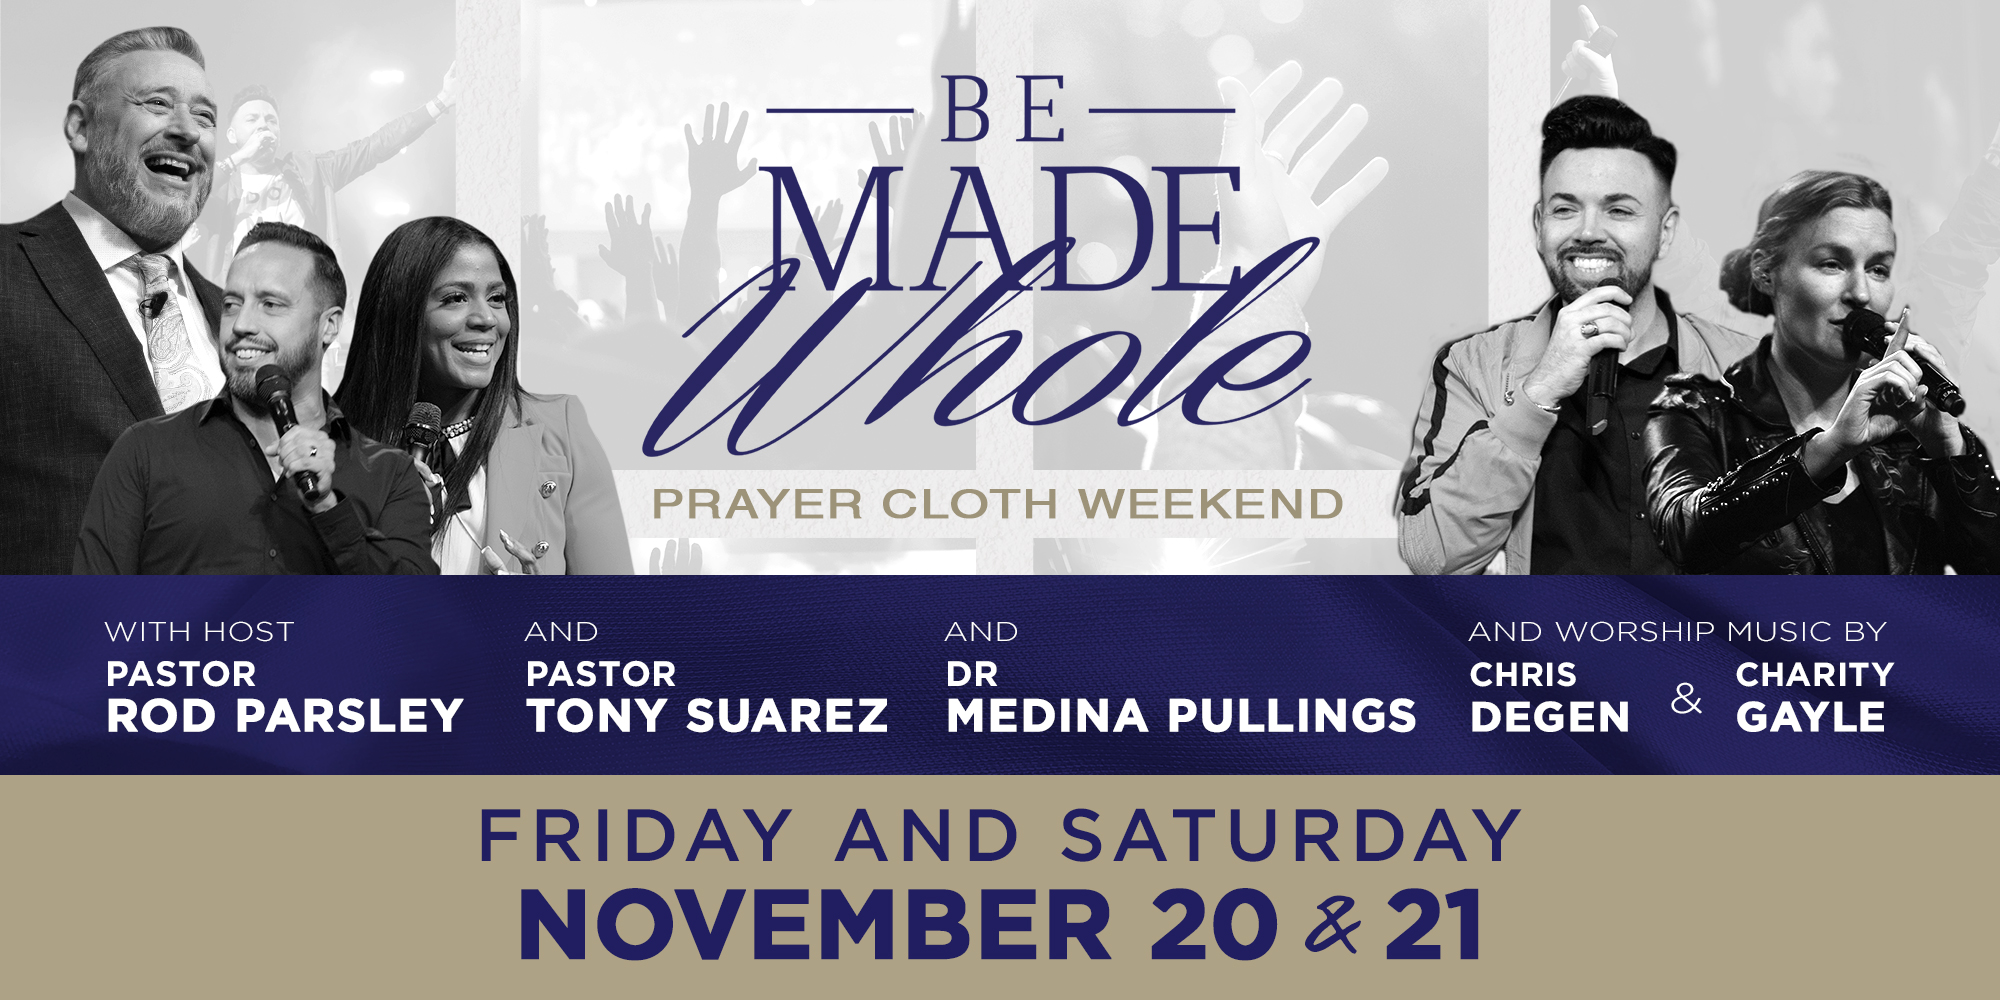 Be made whole prayer cloth weekend with host Pastor Rod Parsley and Pastor Tony Suarez and Dr Medina Pullings and worship music by Charity Gayle and Harvest Music! Friday, Saturday, and Sunday Nov. 20th thru Nov.22nd